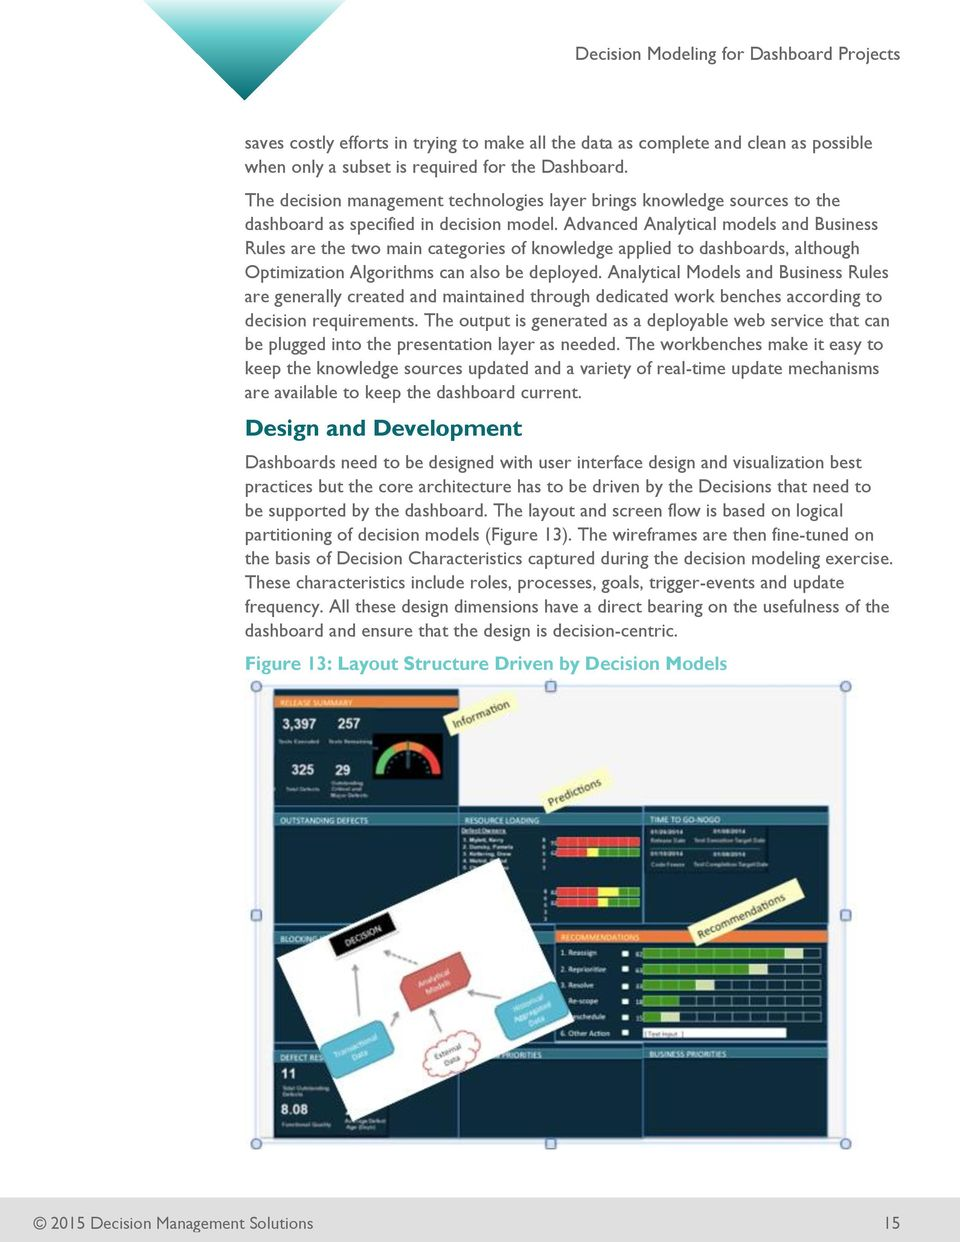 Advanced Analytical models and Business Rules are the two main categories of knowledge applied to dashboards, although Optimization Algorithms can also be deployed.